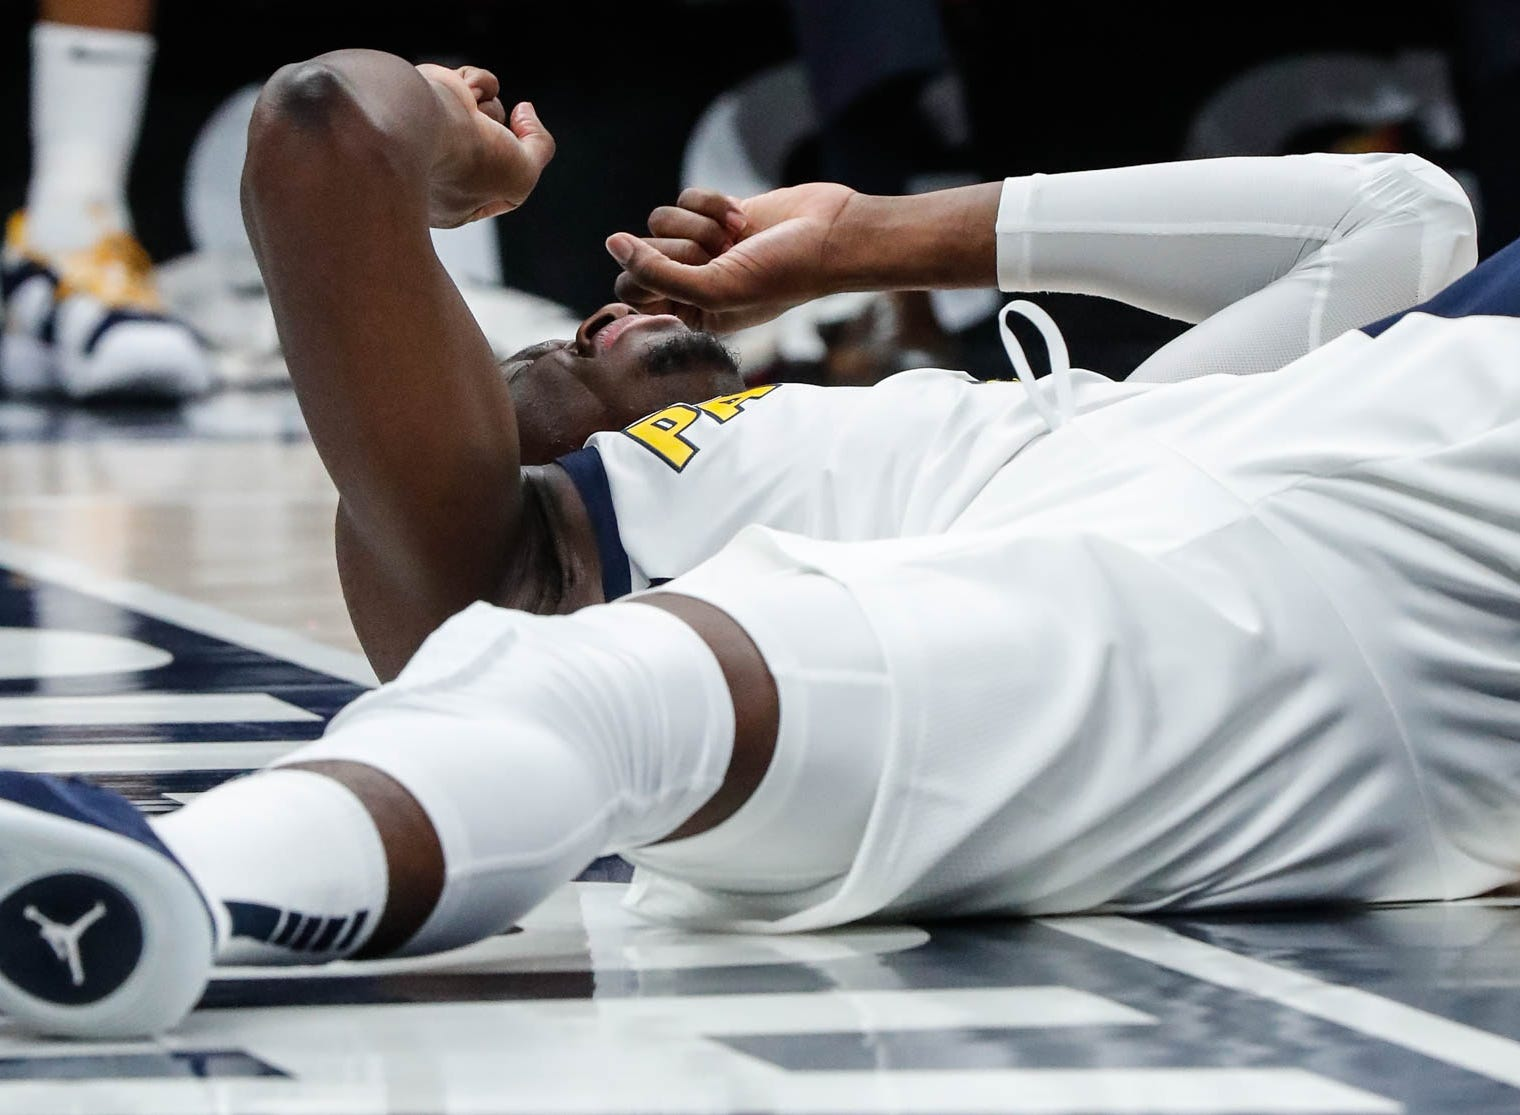 Indiana Pacer's guard Victor Oladipo (4) hits the ground after a play during a game between the Indiana Pacers and the Detroit Pistons at at Bankers Life Fieldhouse in Indianapolis on Friday, Dec. 28, 2018.